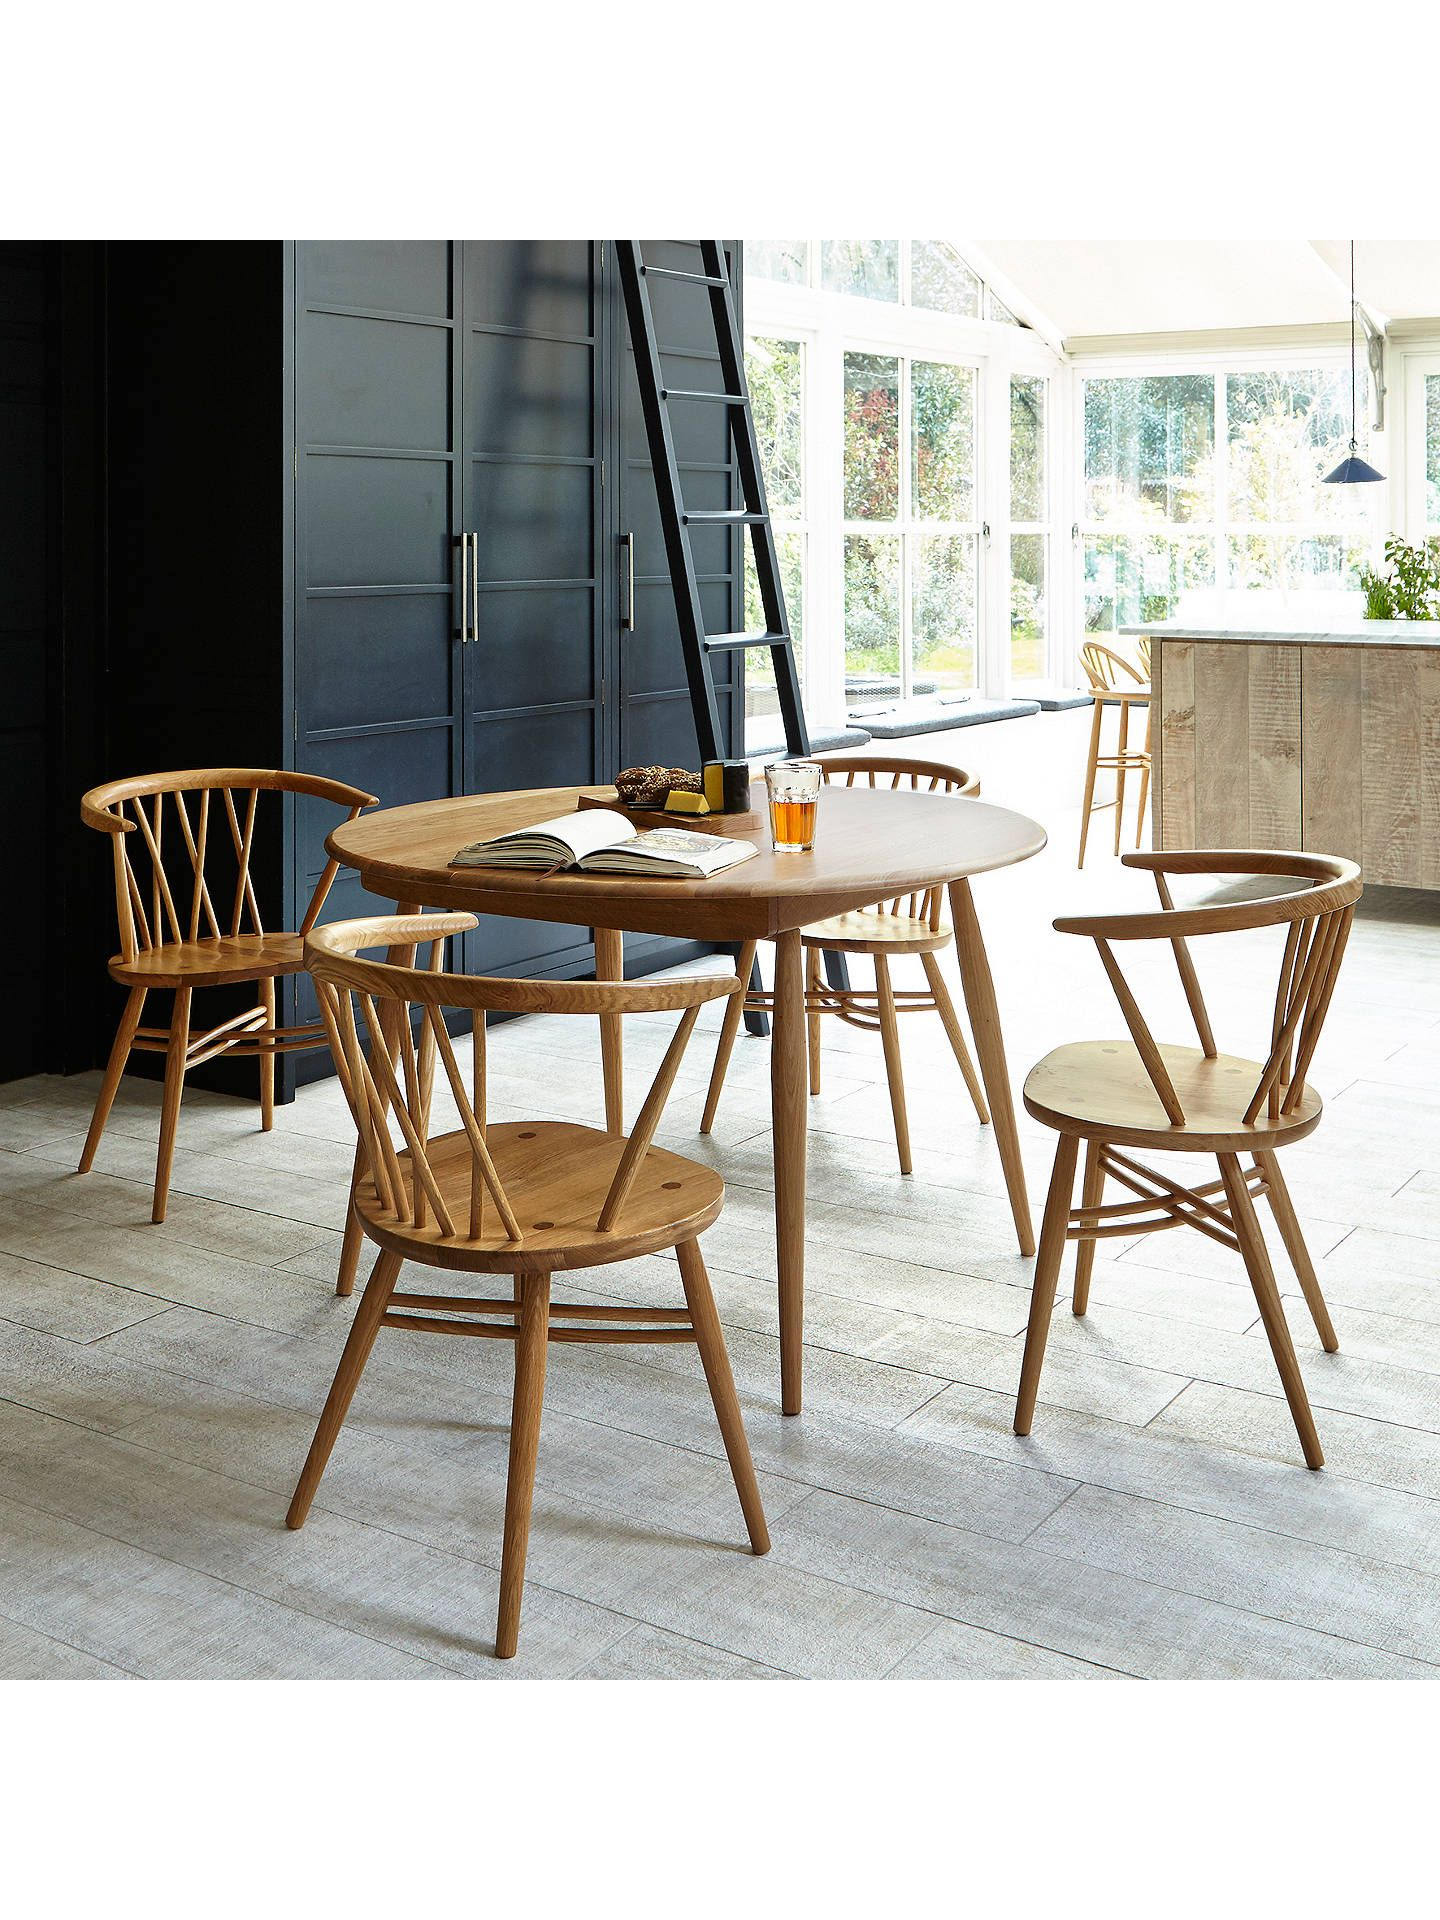 Ercol For John Lewis Shalstone 4 Seater Dining Table, Oak In 2019 With 2017 John 4 Piece Dining Sets (Image 6 of 20)